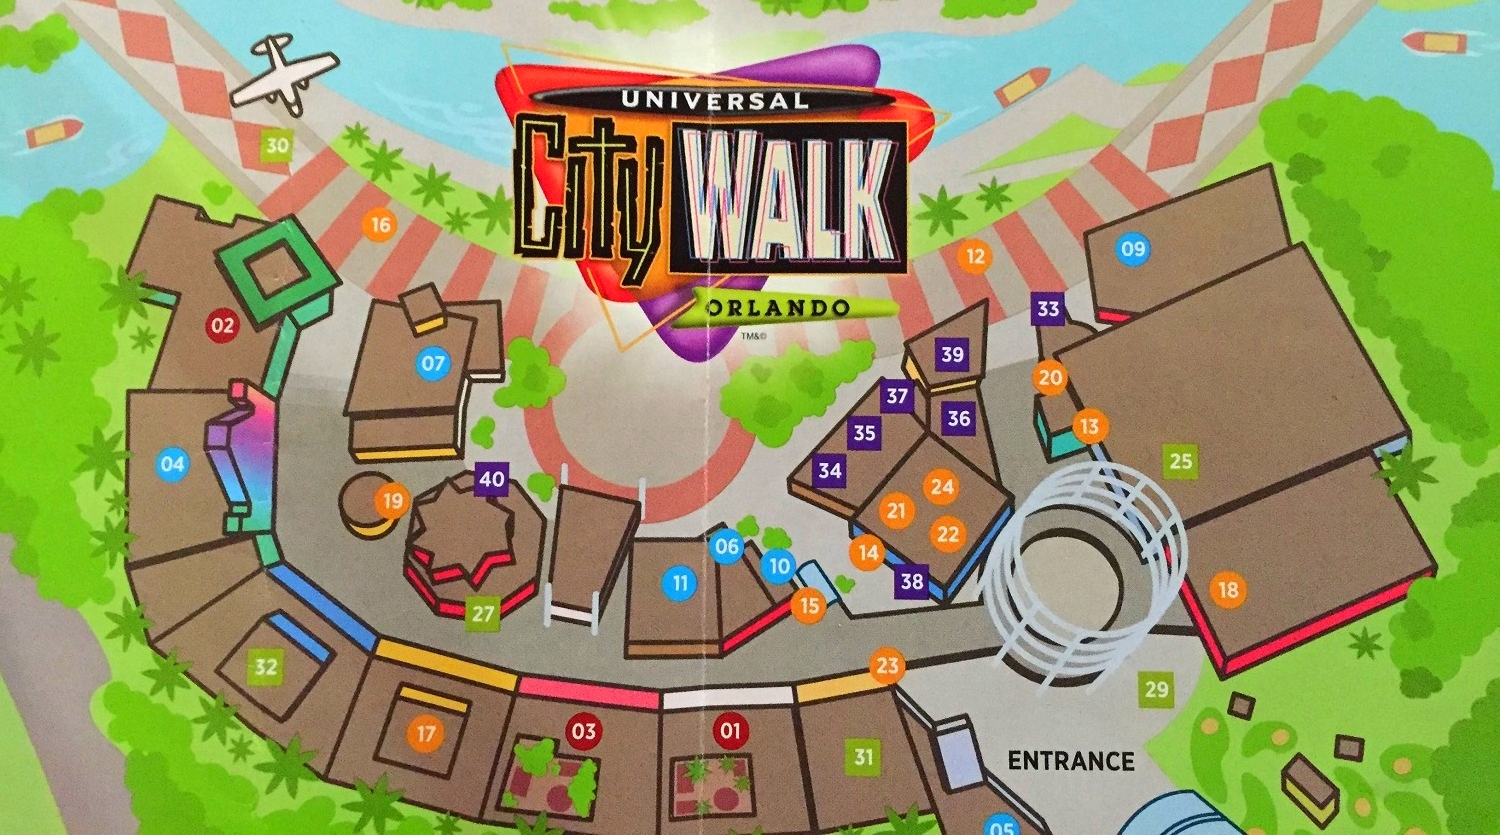 Locate number 07 on this Universal CityWalk map to find Emeril's Restaurant Orlando.